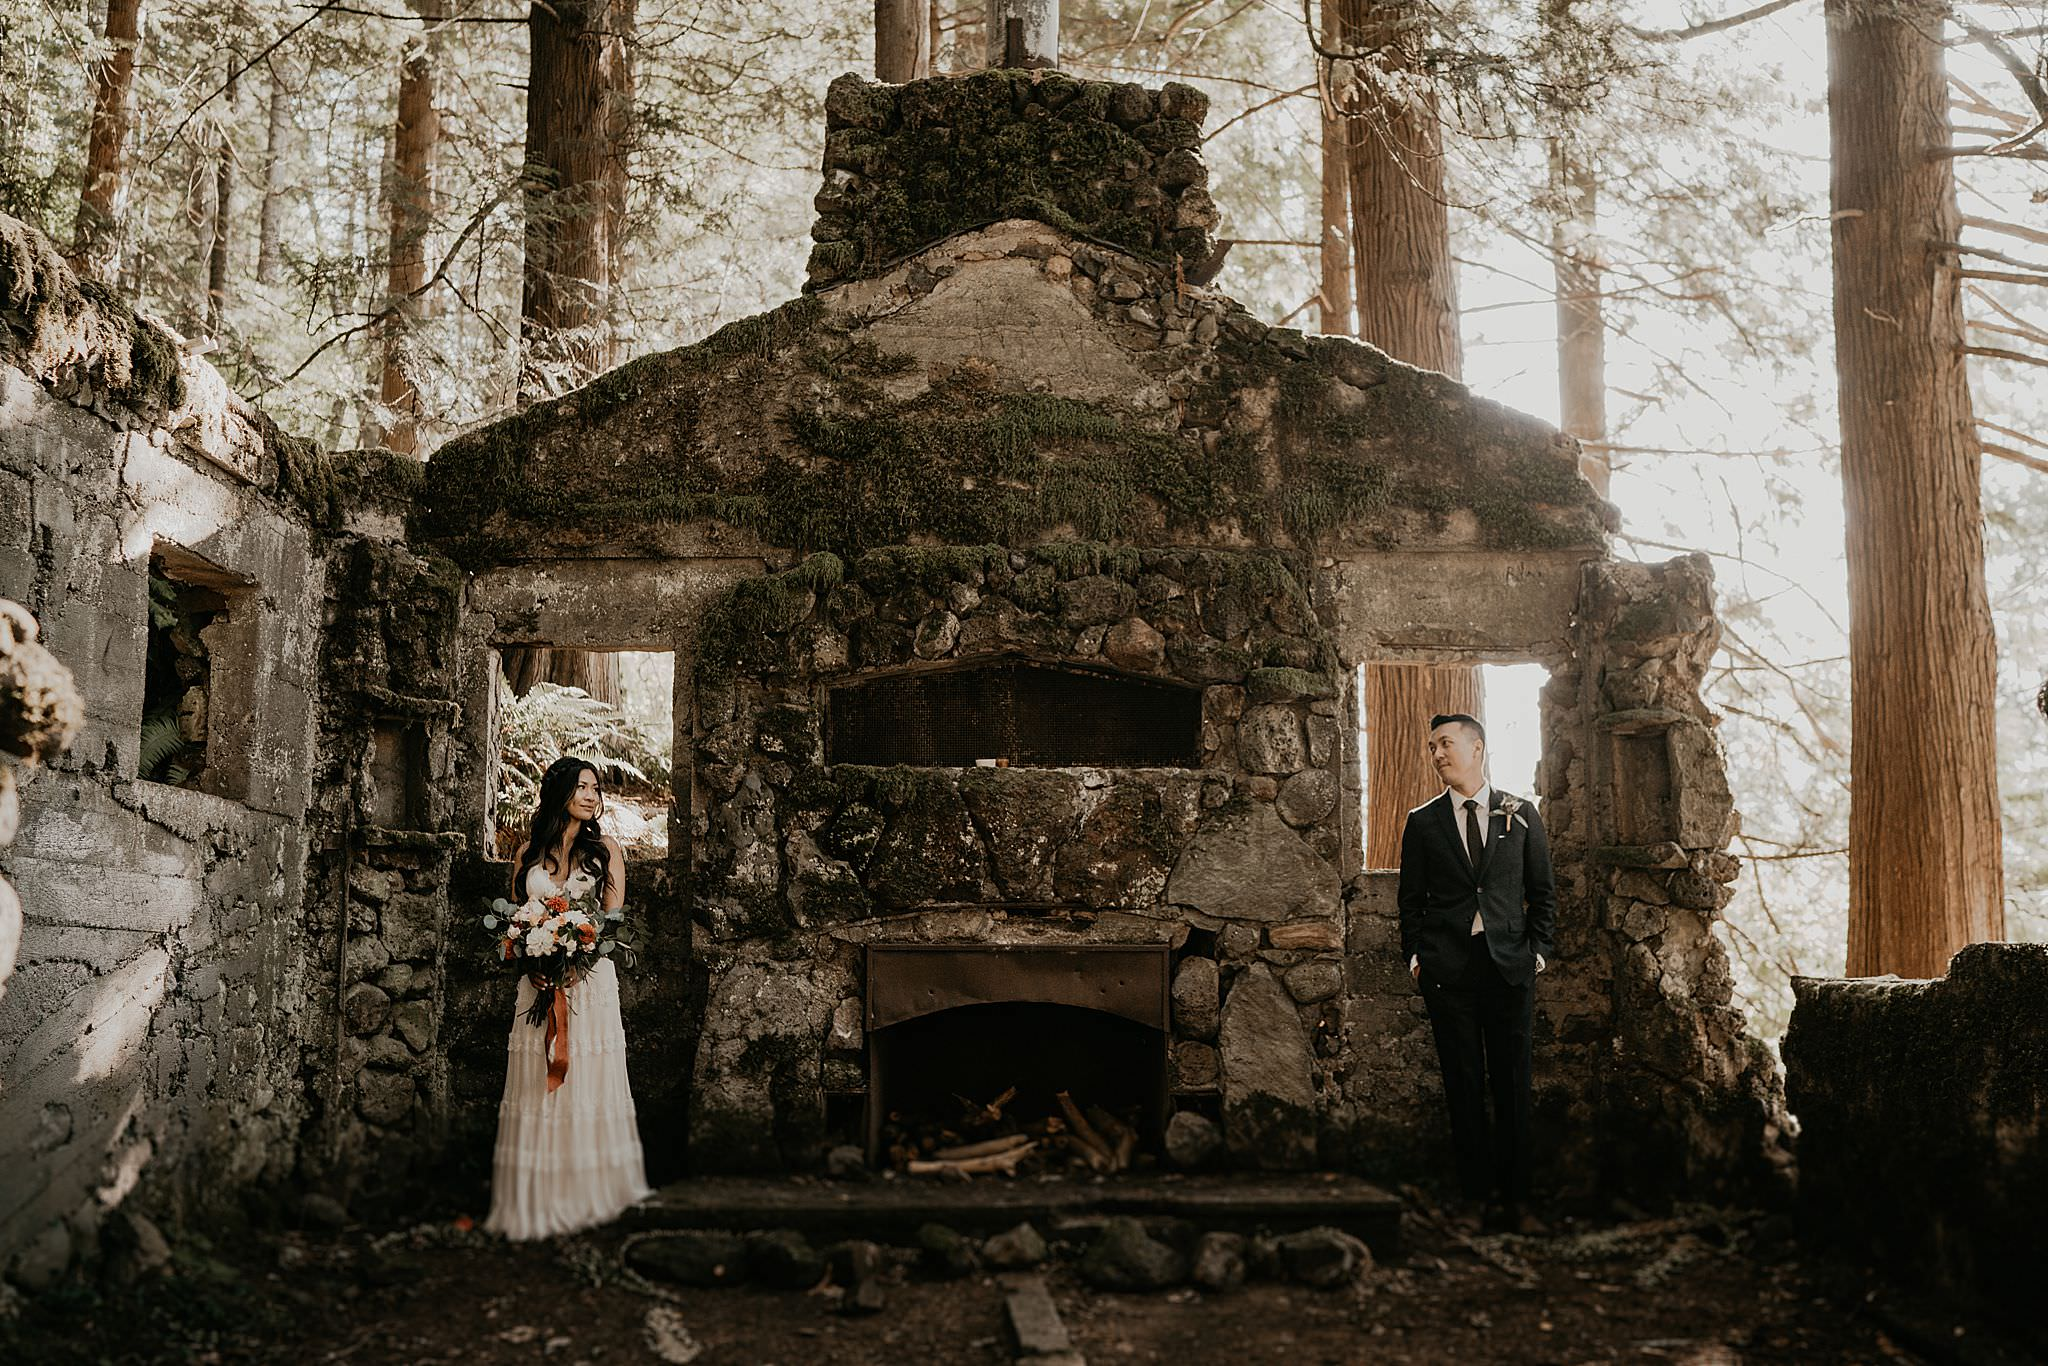 Couple got married at Skamania Stone House, Washington Adventure Elopement Photographer